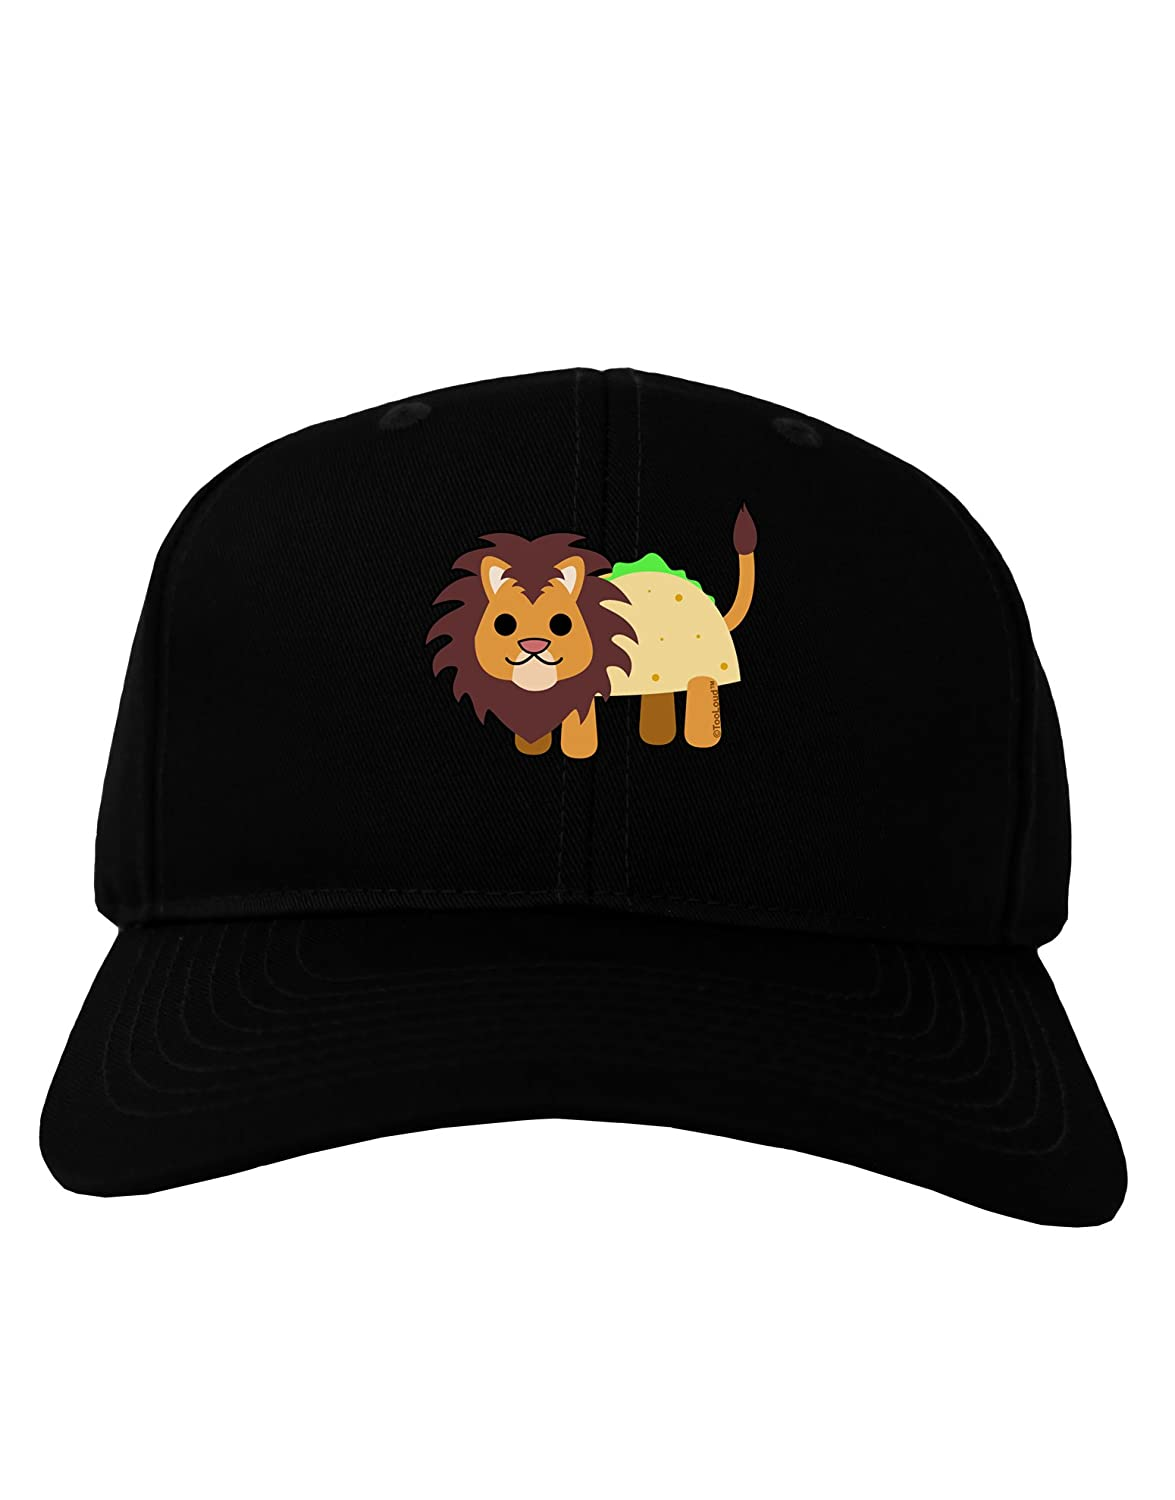 Amazon.com  TooLoud Cute Taco Lion Adult Dark Baseball Cap Hat - Black   Clothing 59f18bb912b1